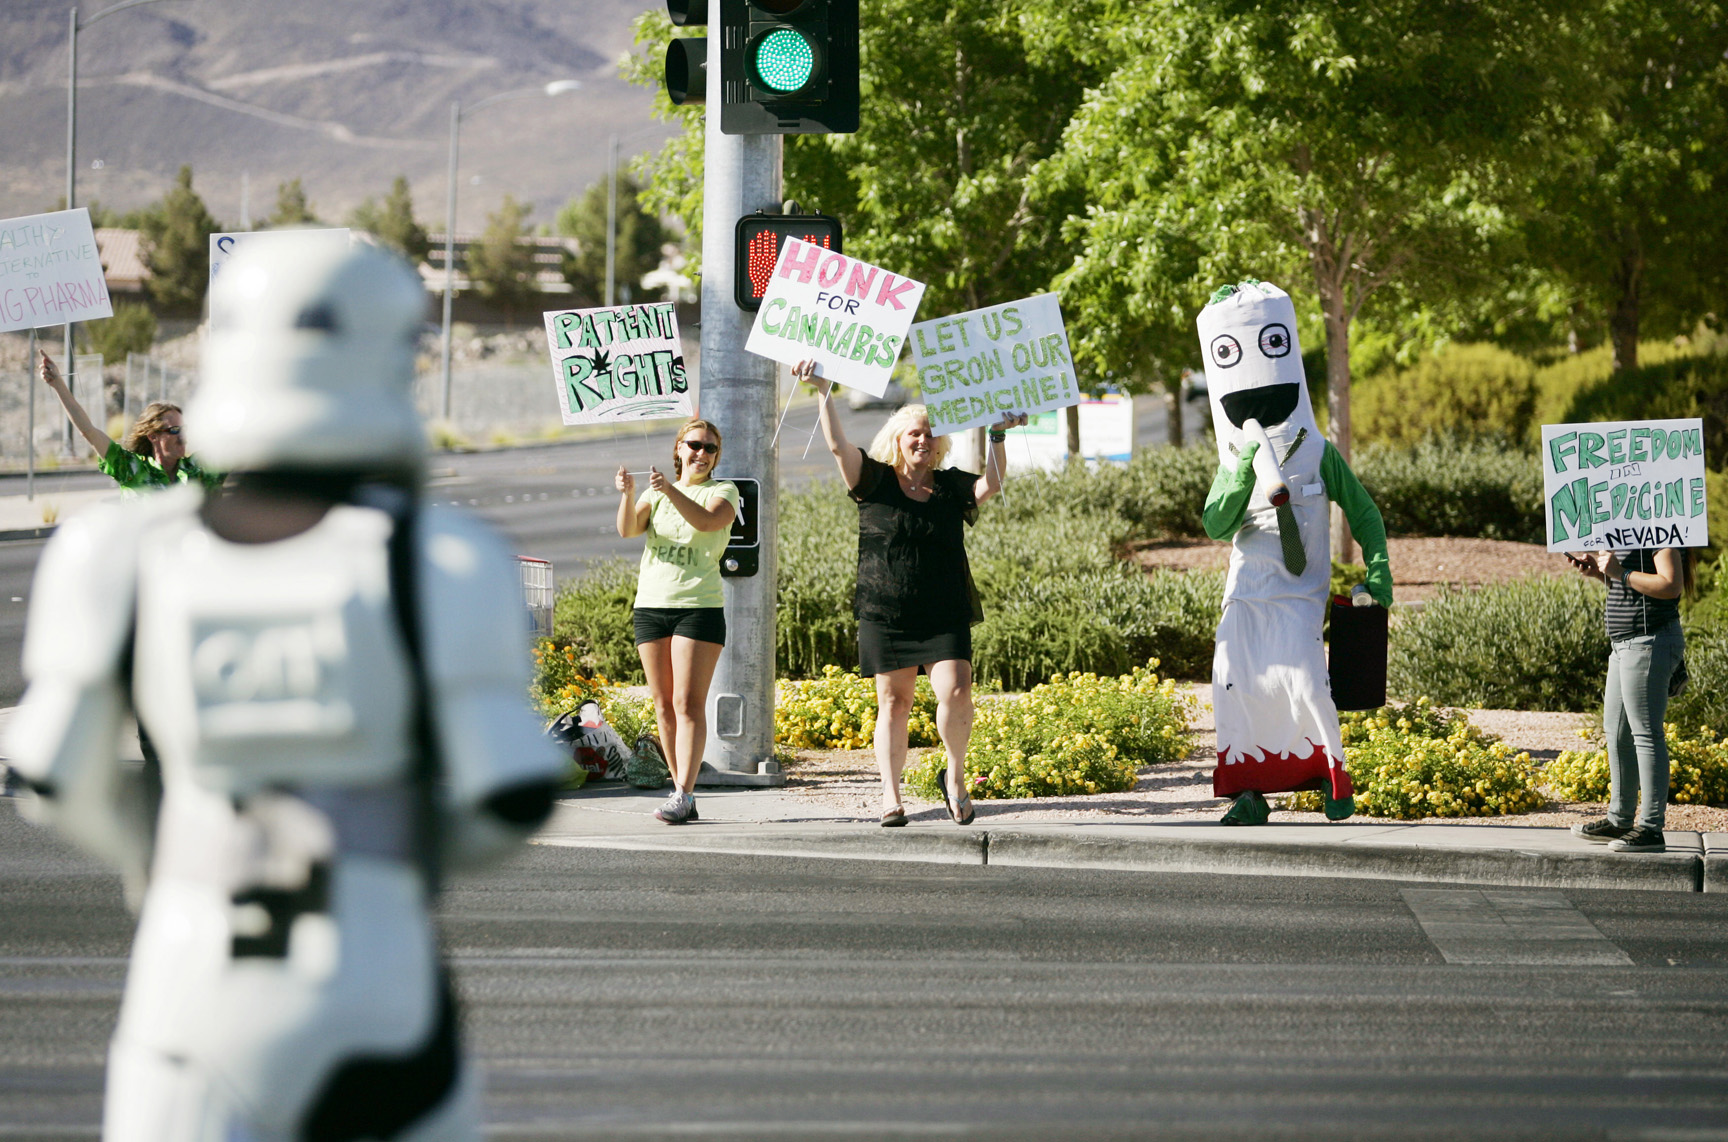 Members of the Cannabis Career Institute rally at the corner of Marks Street and West Warm Springs Road Saturday, June 1, 2013, in Henderson, Nev. The group walked to a nearby Hilton Grand Garden Inn, where The Cannabis Career Institute offered a class for starting your own medical marijuana dispensary.